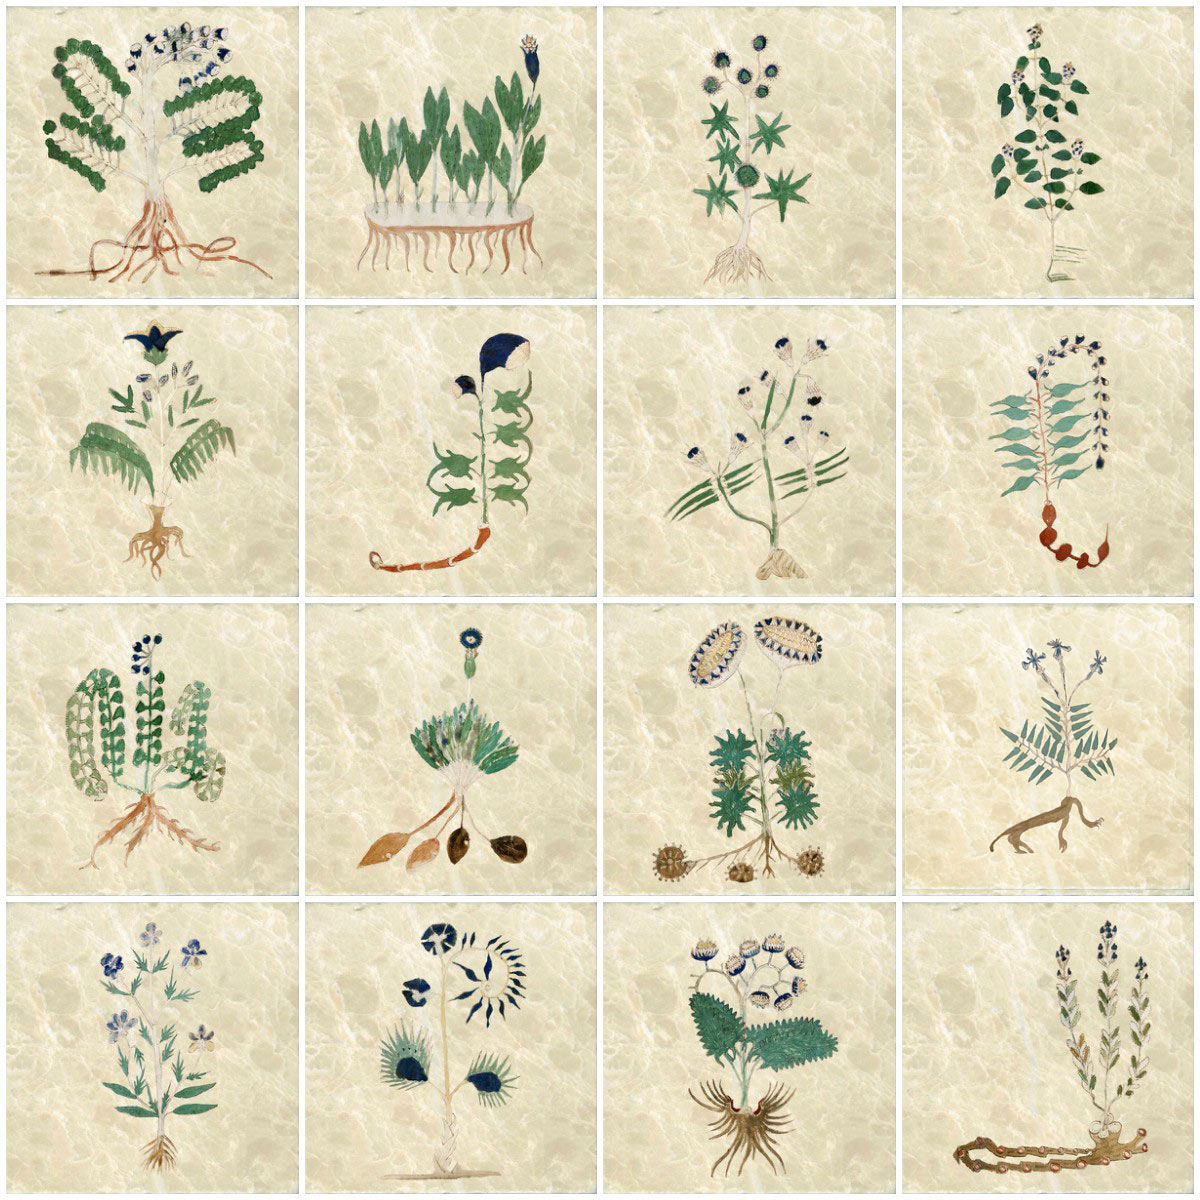 Voynich Manuscript tiles, predominantly blues.